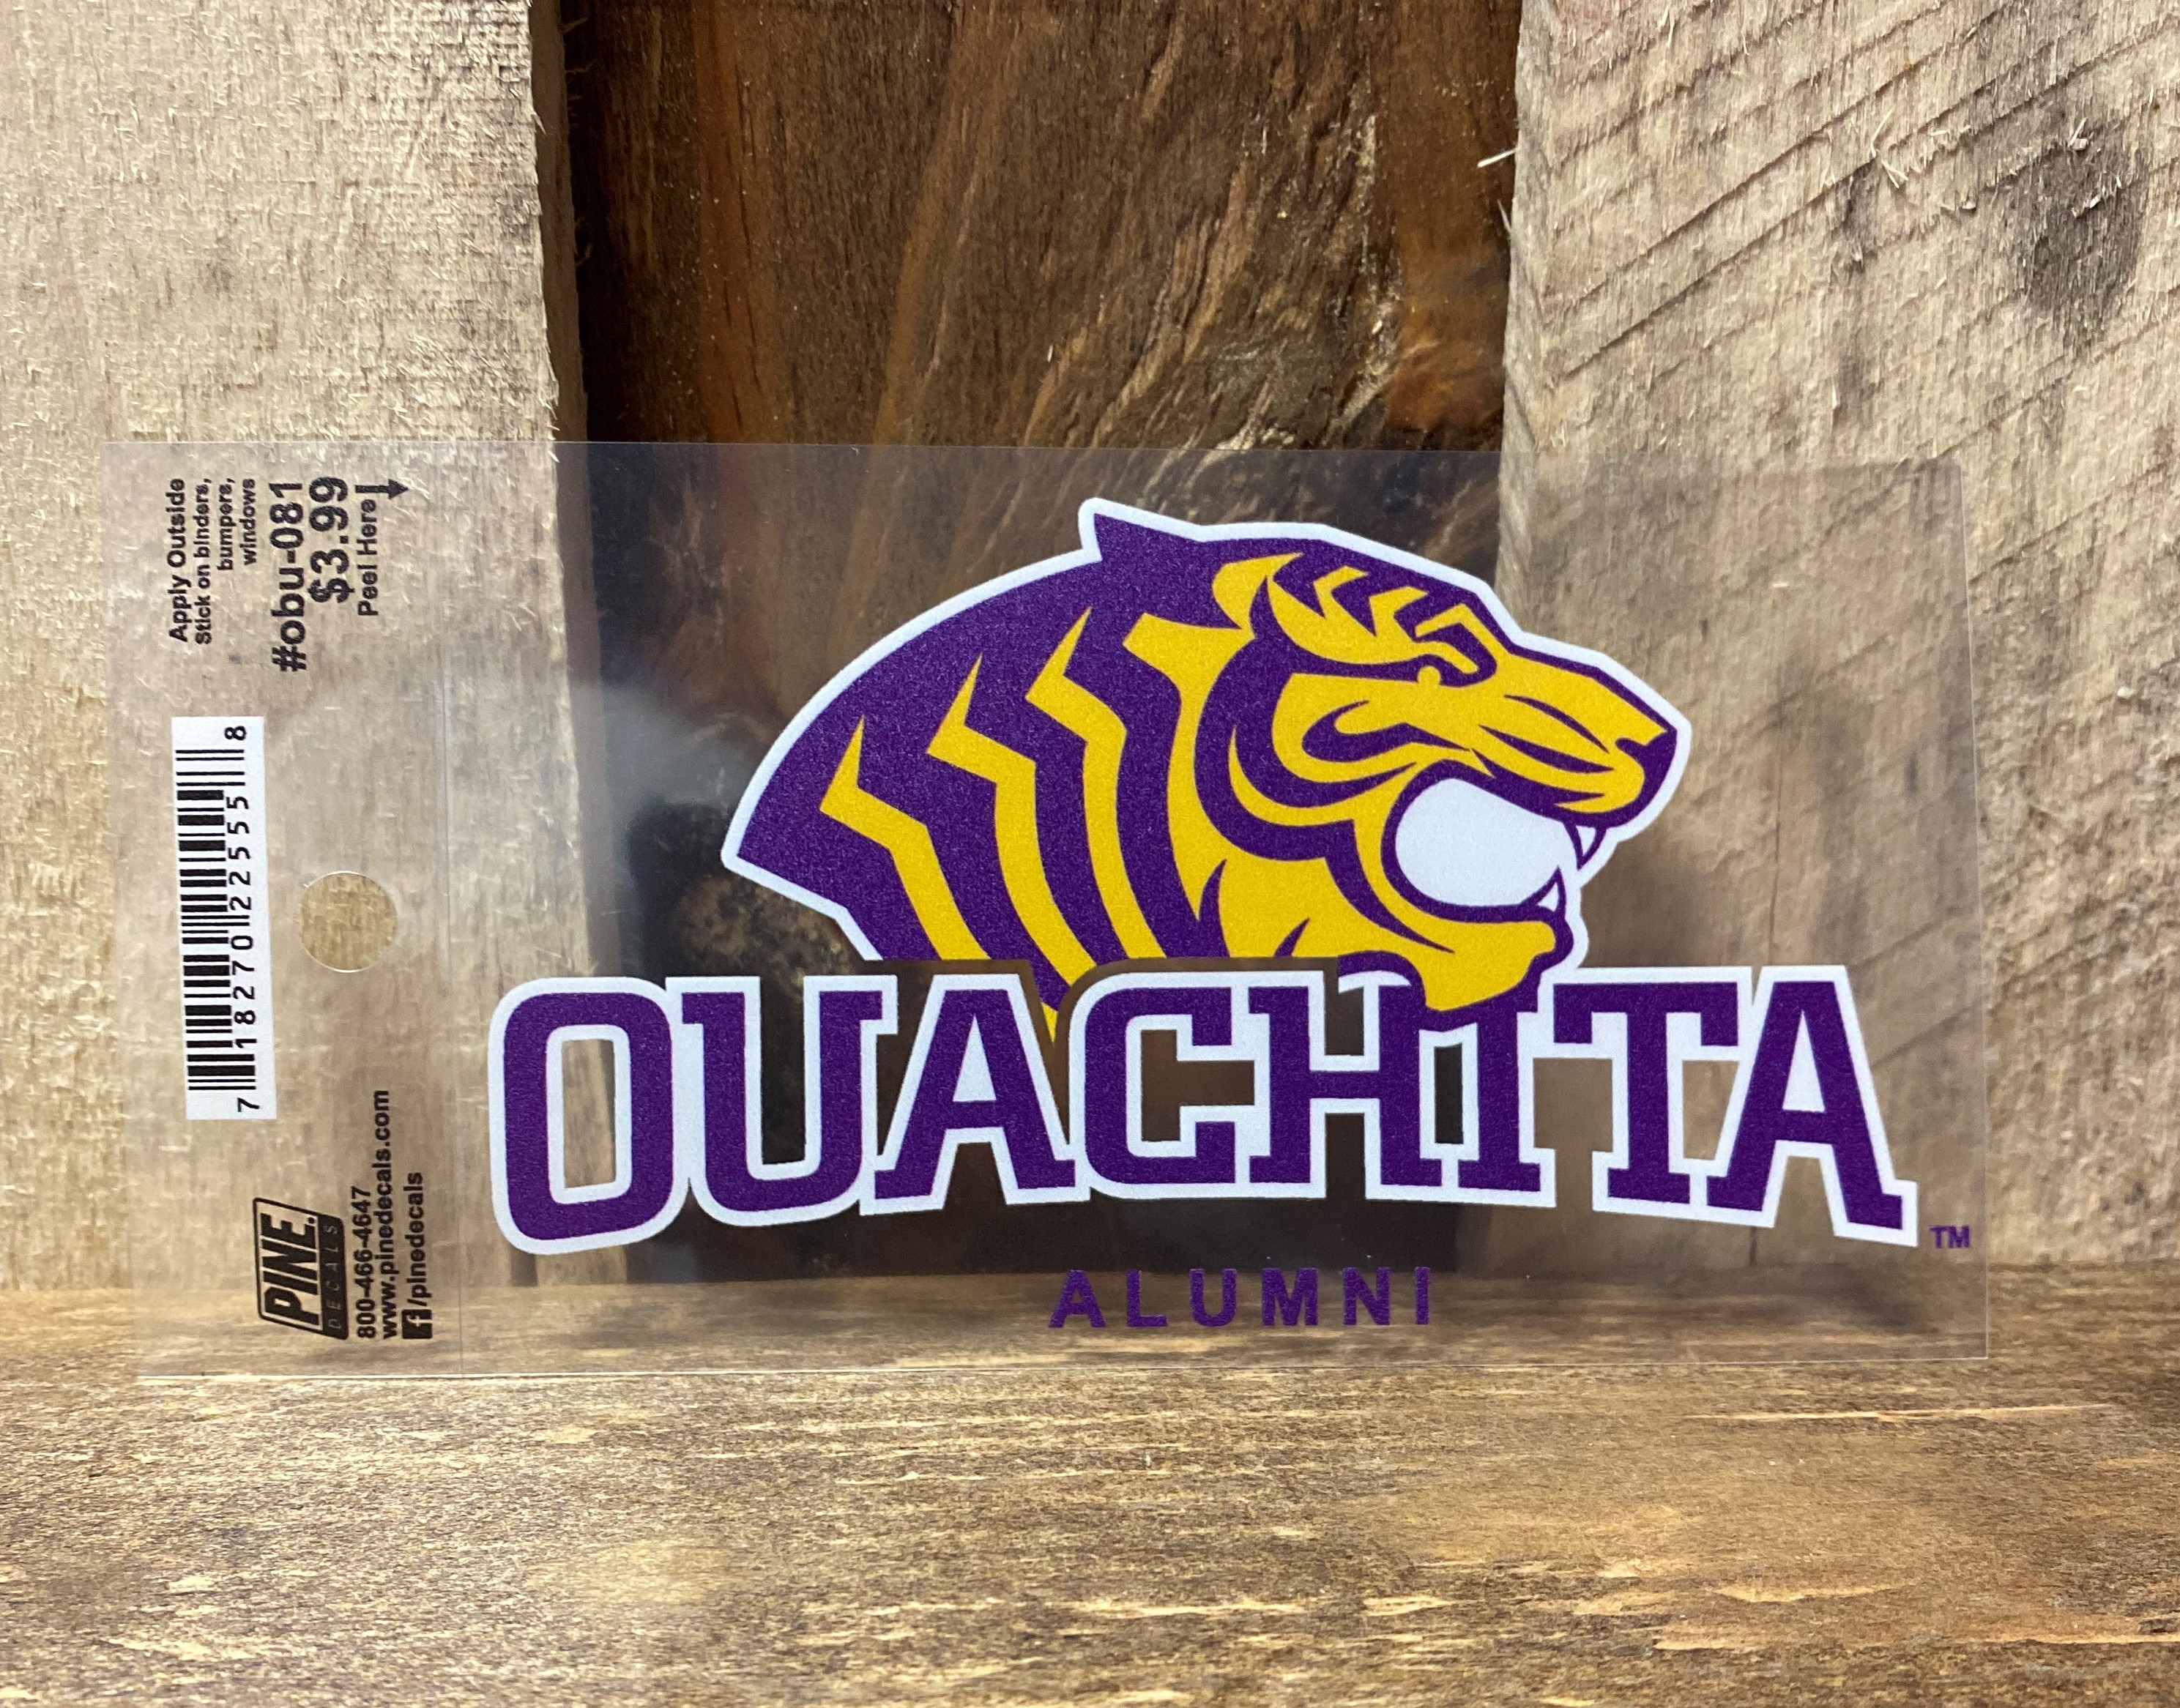 OUACHITA ALUMNI CAR DECAL